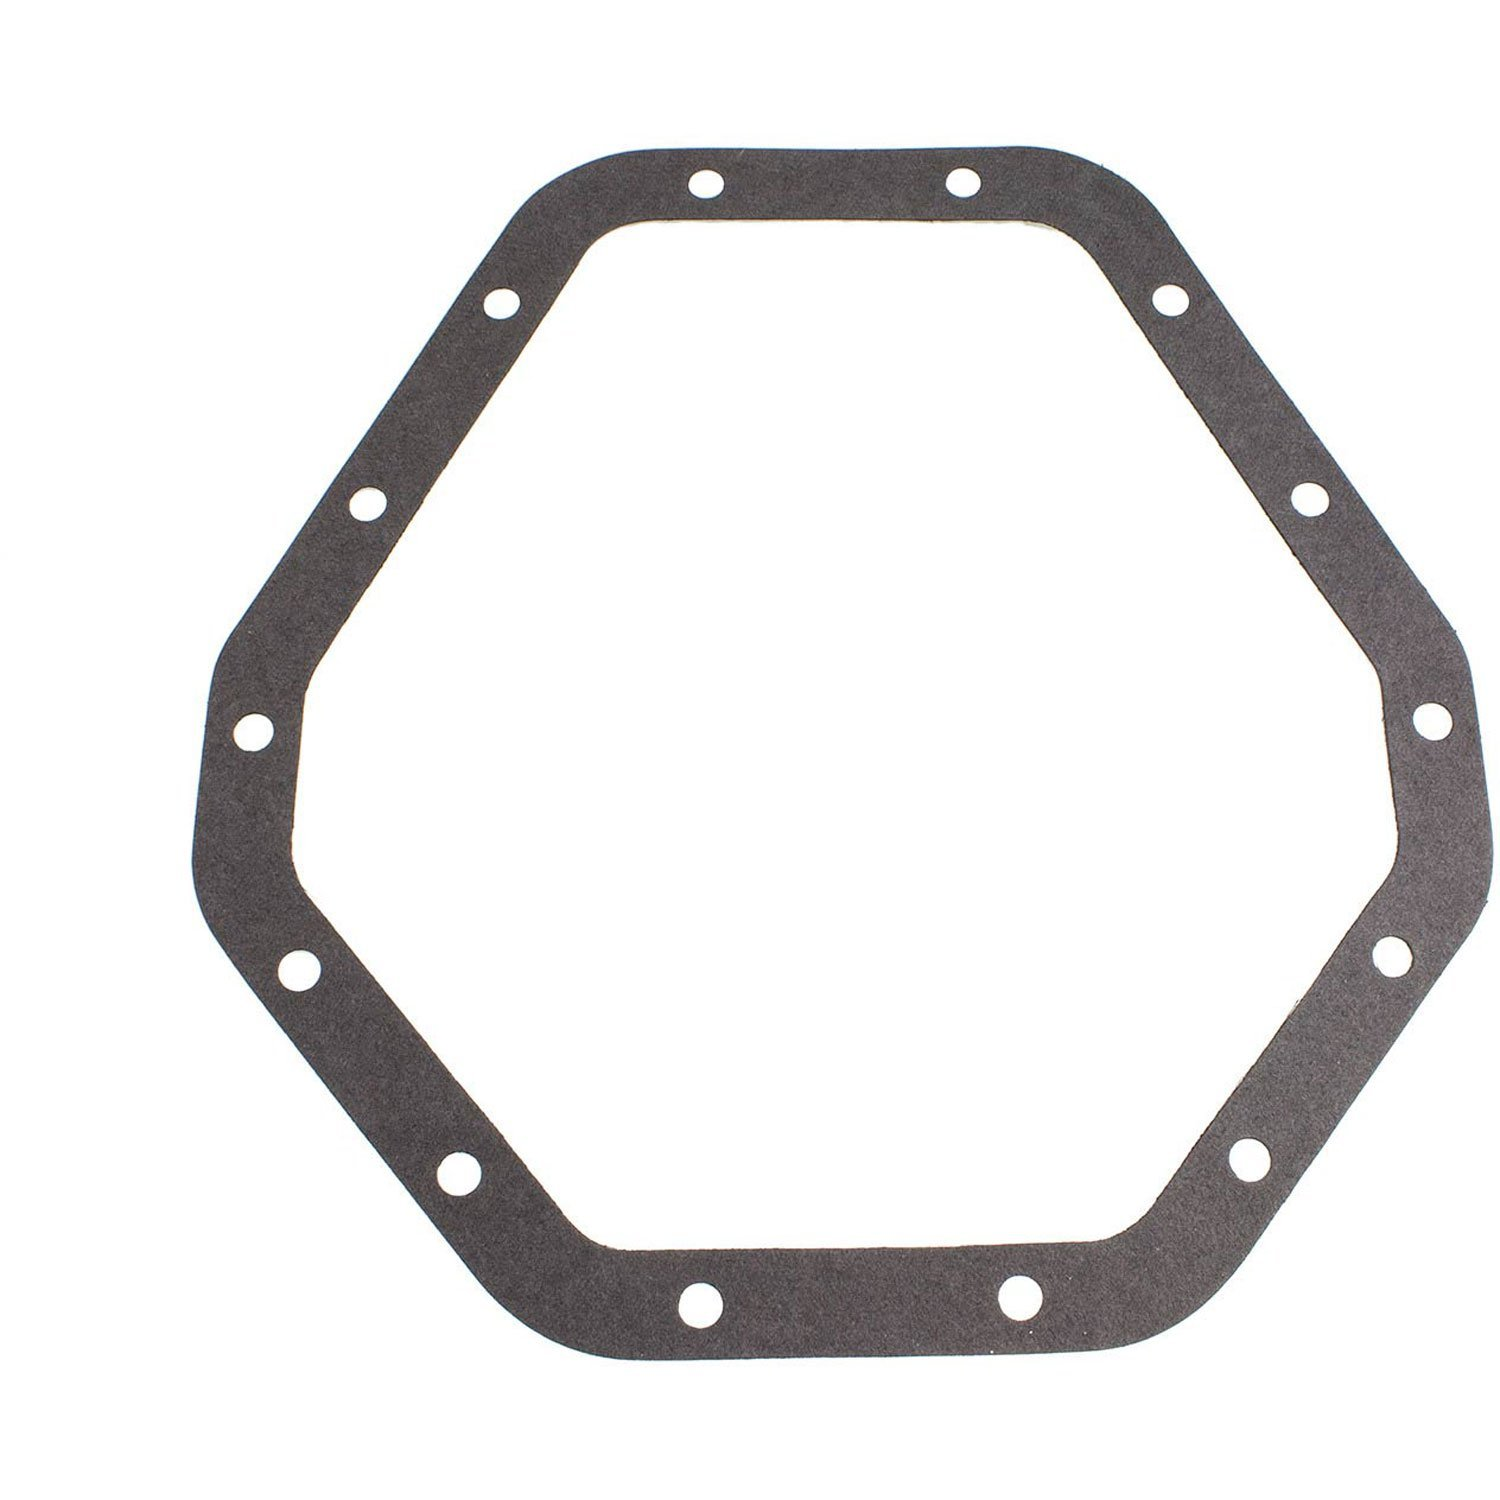 Motive Gear 26012845 Differential Cover Gasket